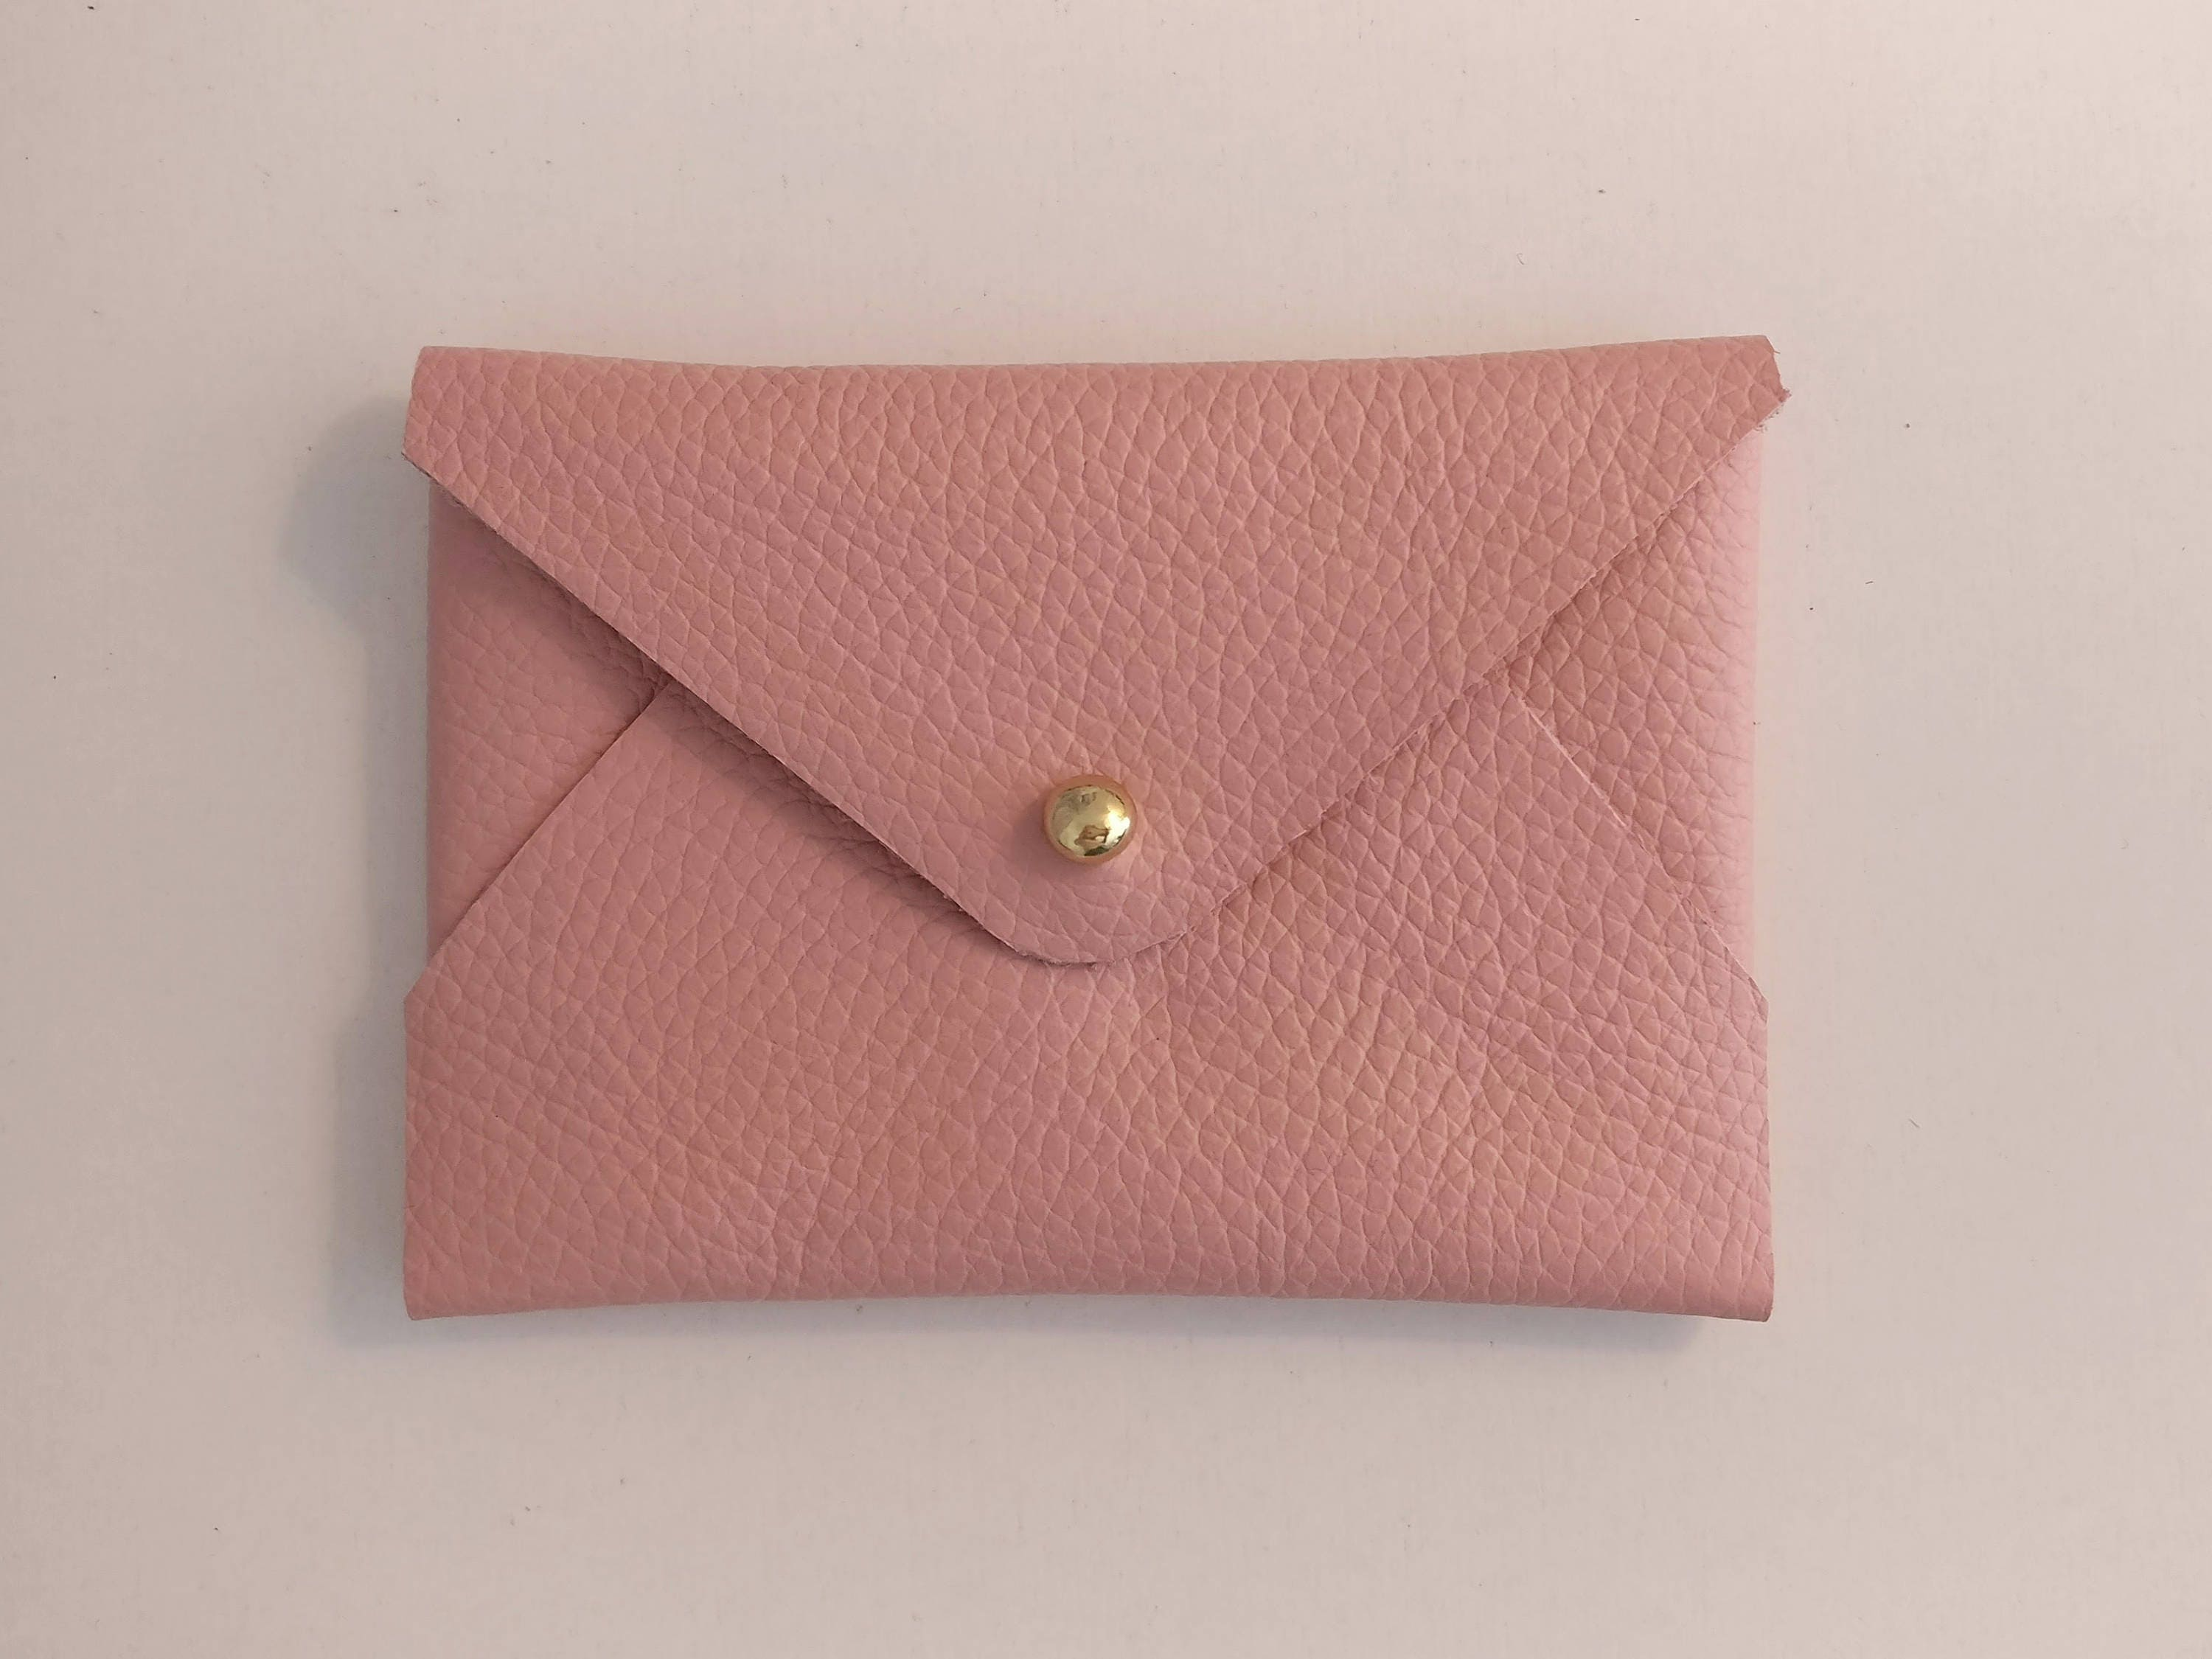 Pastal pink, nude leather envelope business card holder, card pouch ...